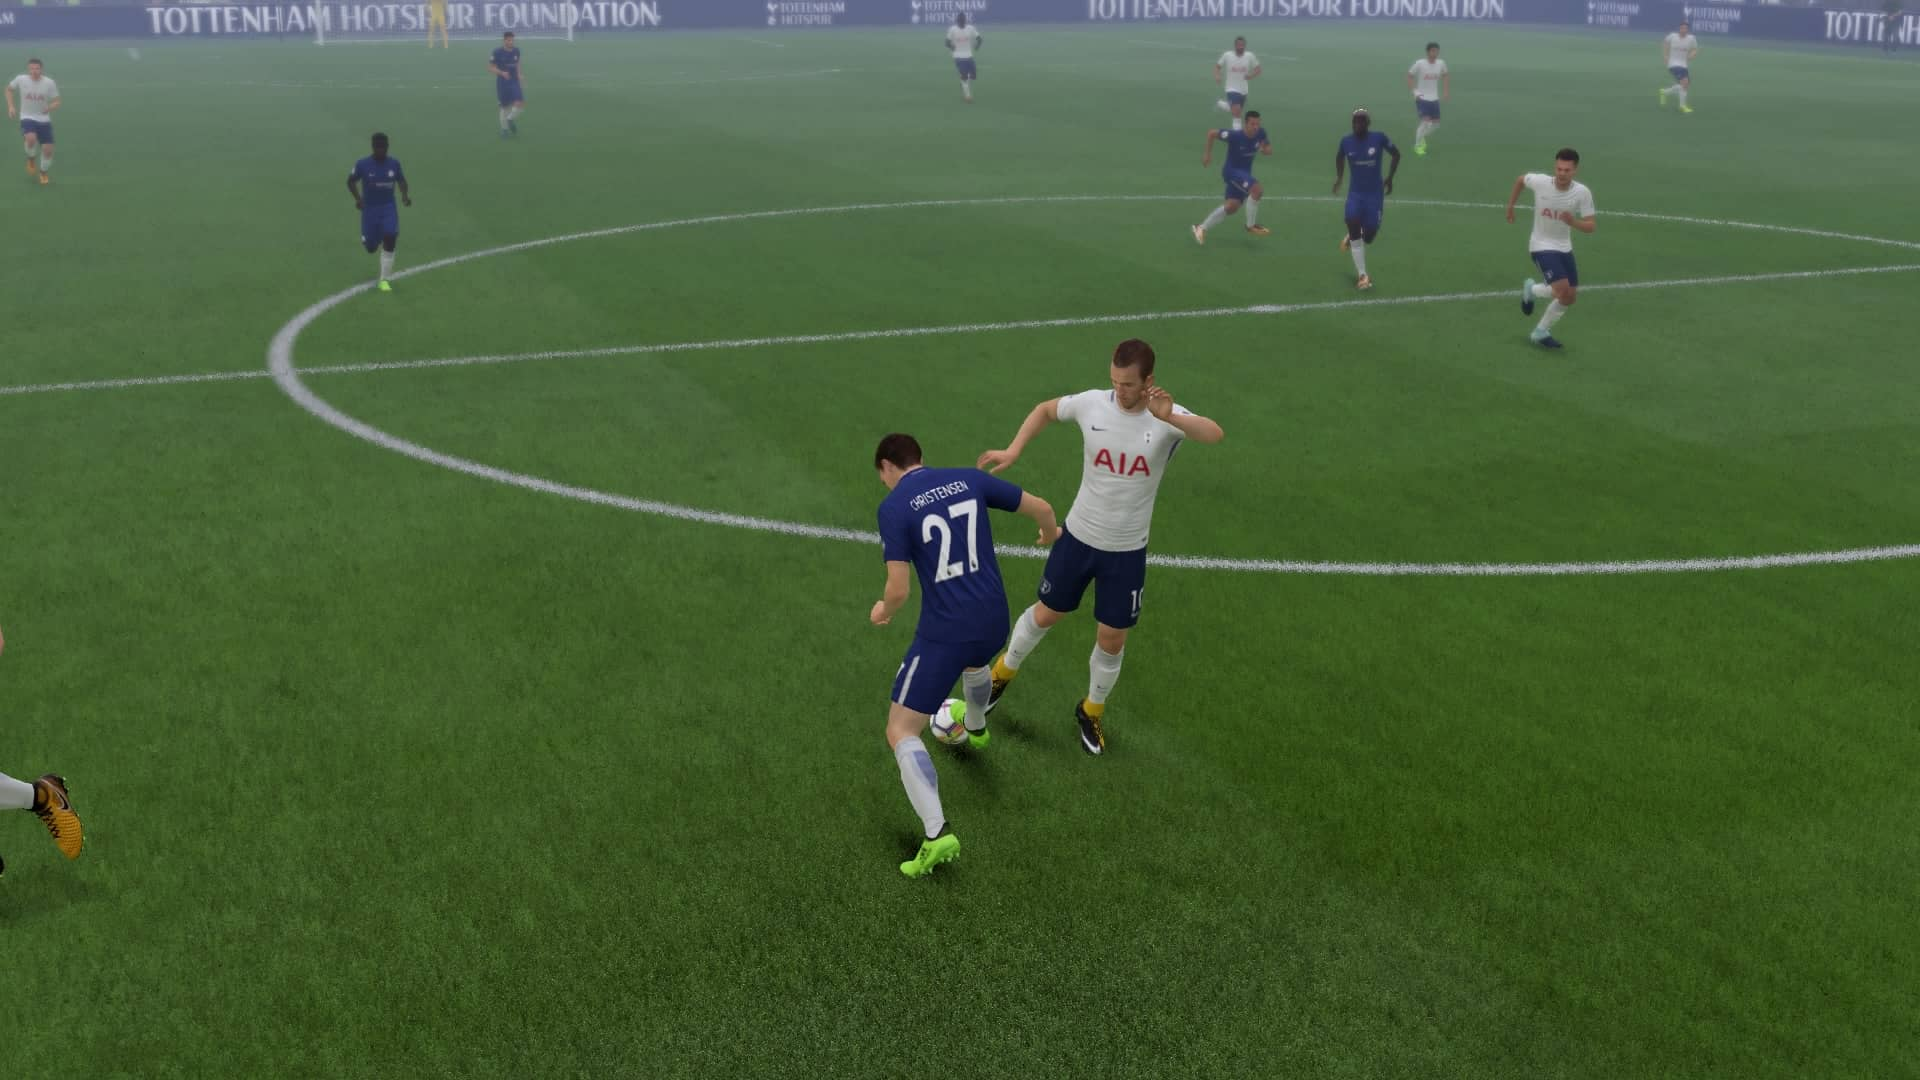 Andreas Christensen tackles Harry Kane